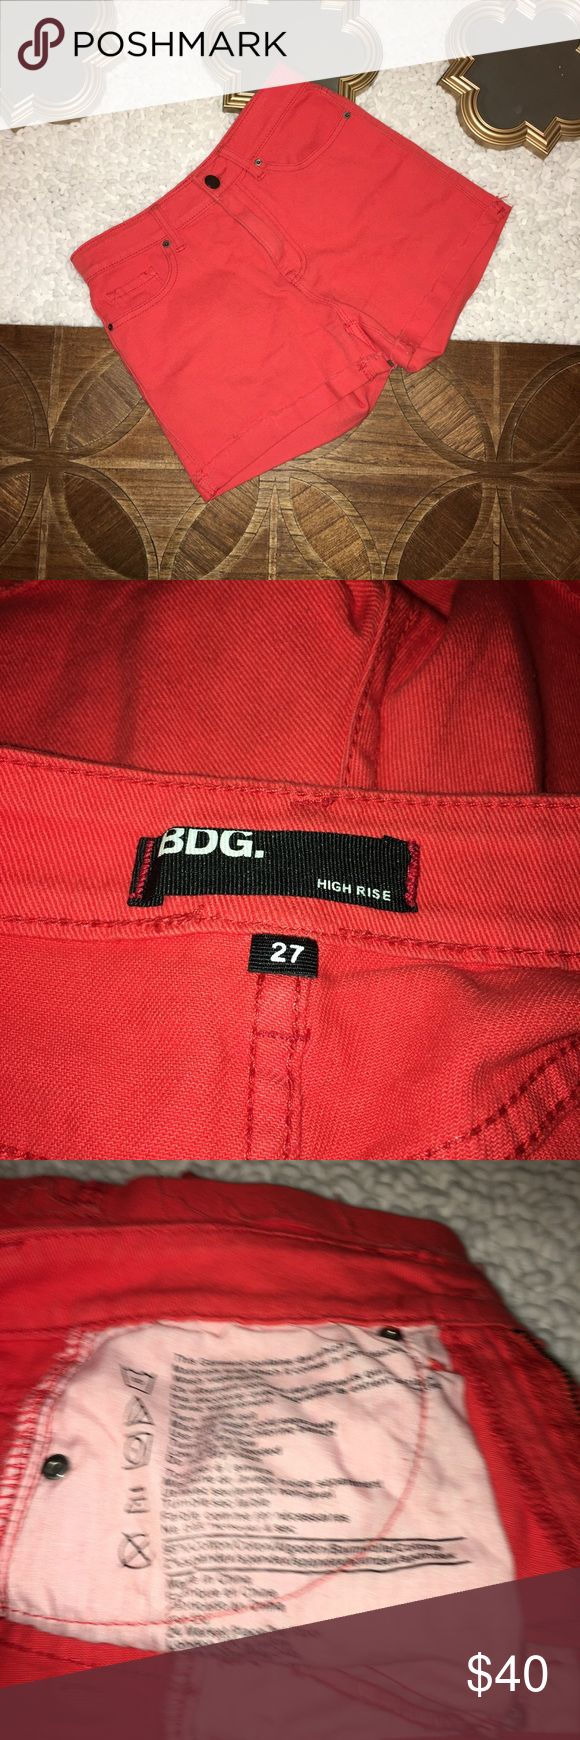 """Urban Outfitters Coral Red High Waist Shorts Urban Outfitters BDG Women's High Rise Shorts. Coral red. Size 27.  Waist: 27"""" around  Length: 13"""" Urban Outfitters Shorts Jean Shorts"""